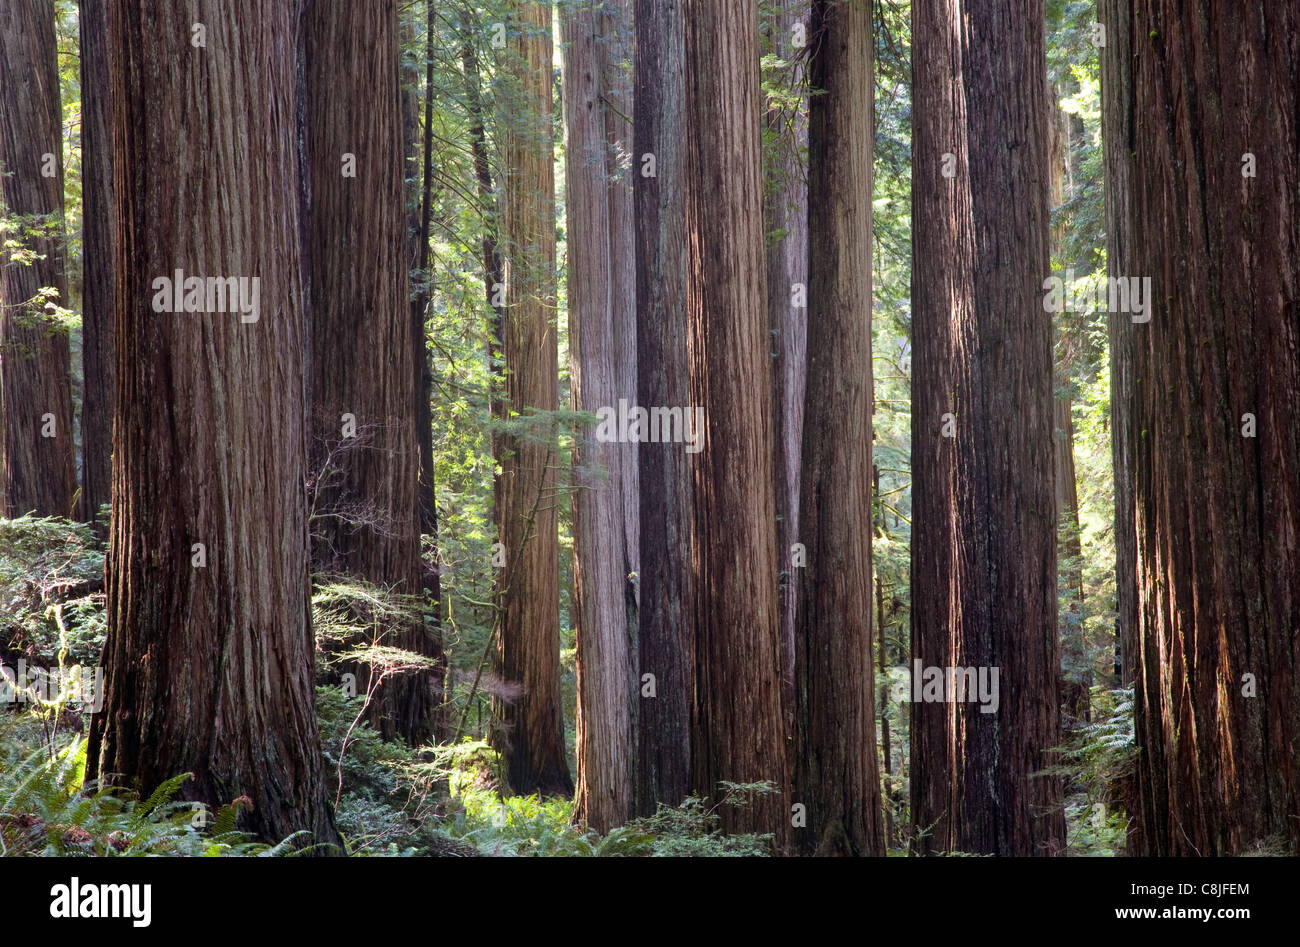 CALIFORNIA - Redwood forest along the Scout Trail in Jedediah Smith Redwoods State Park. - Stock Image